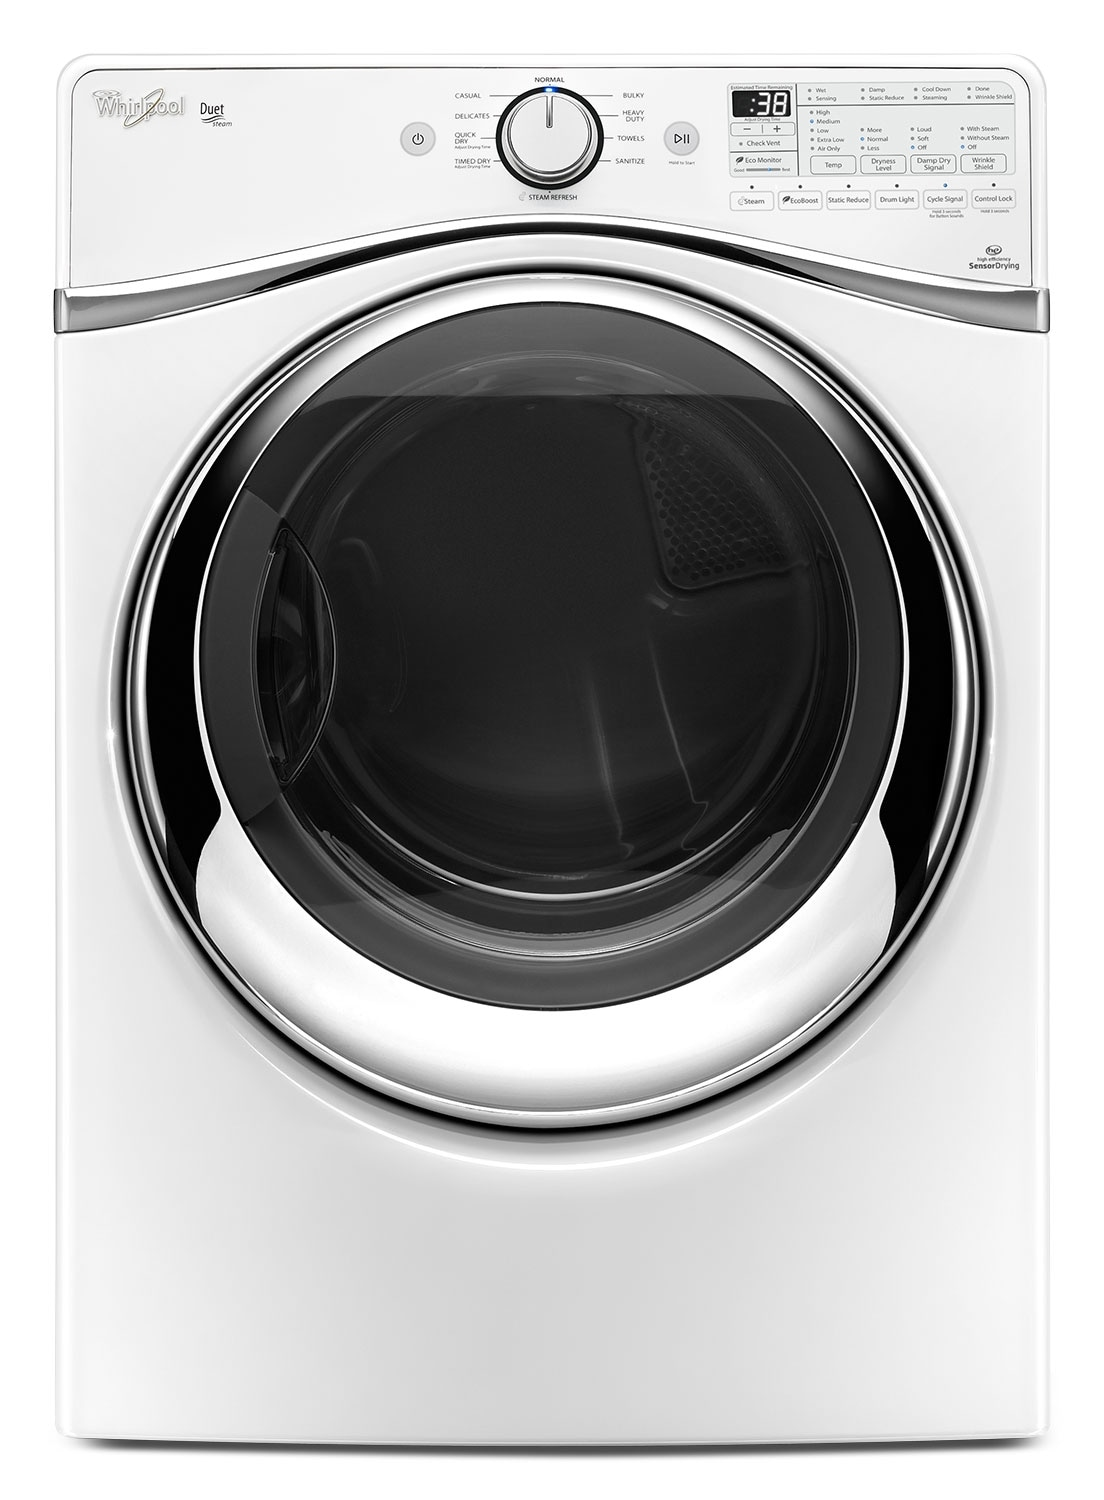 Washers and Dryers - Whirlpool Gas Dryer (7.3 Cu. Ft.) WGD97HEDW